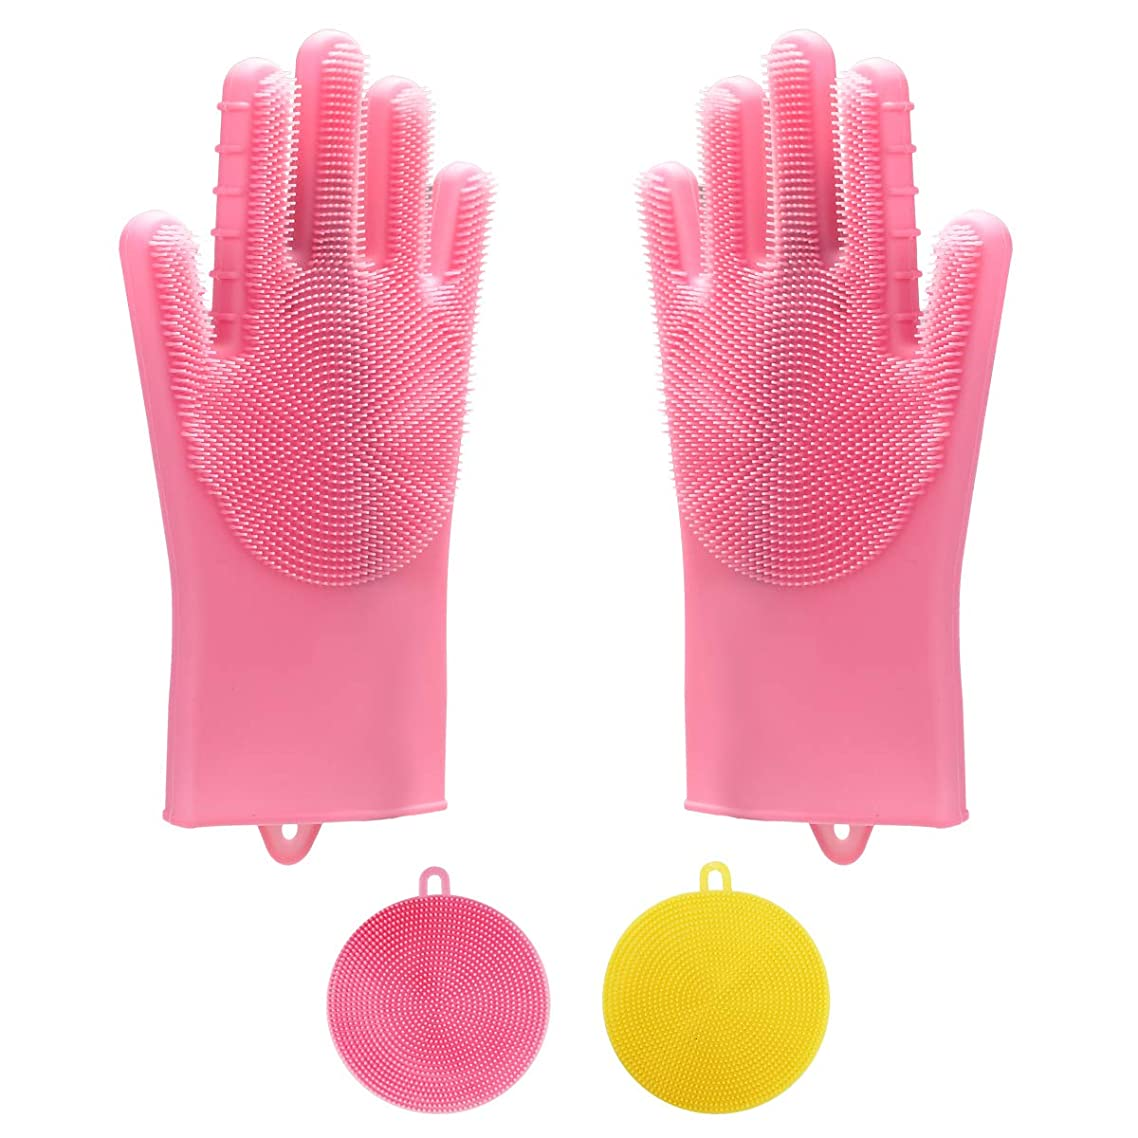 Magic Silicone Dishwashing Cleaning Gloves Wash Scrubber 1 Pair Dish Washing Kitchen Heat Resistant Scrub Rubber Glove for Kitchen Bathroom Pet Car Washing